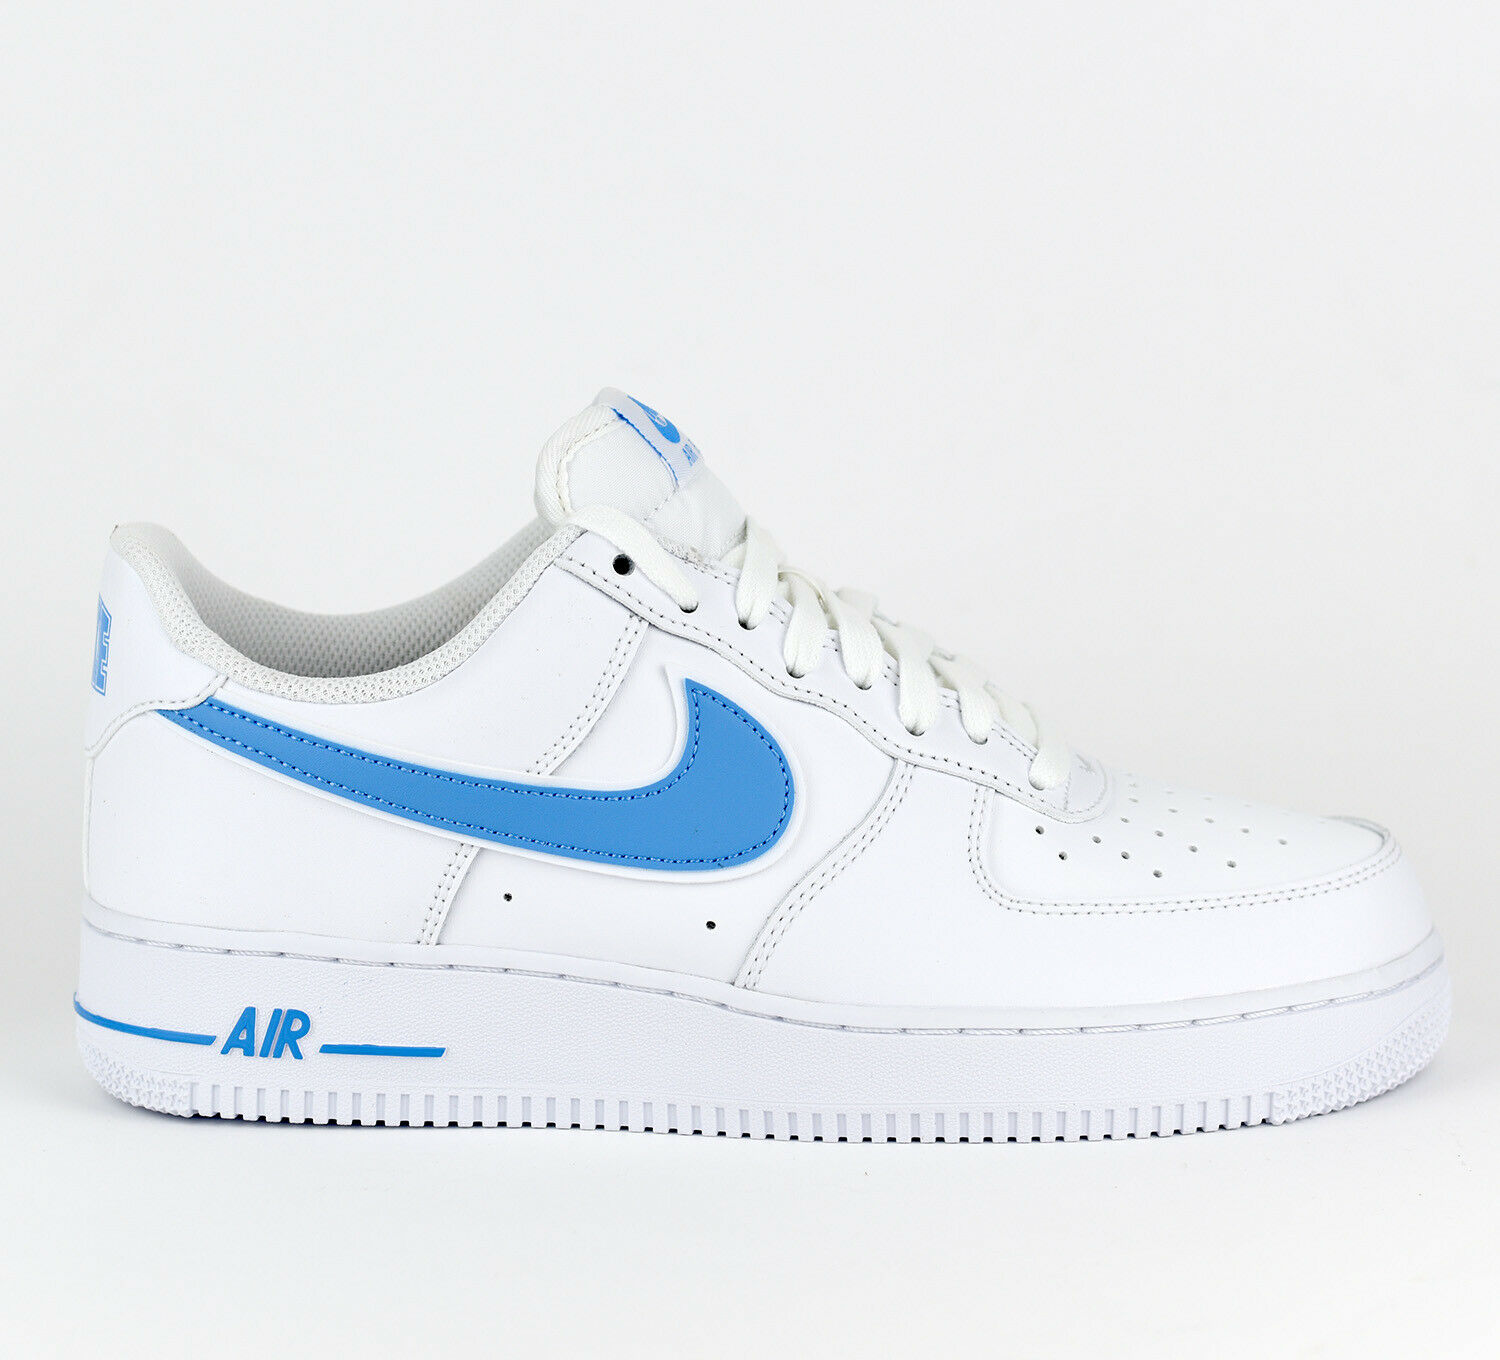 Nike Air Force 1 1 1 '07 3 AF1 Men Lifestyle Sneakers New White bluee AO2423-100 22e60a